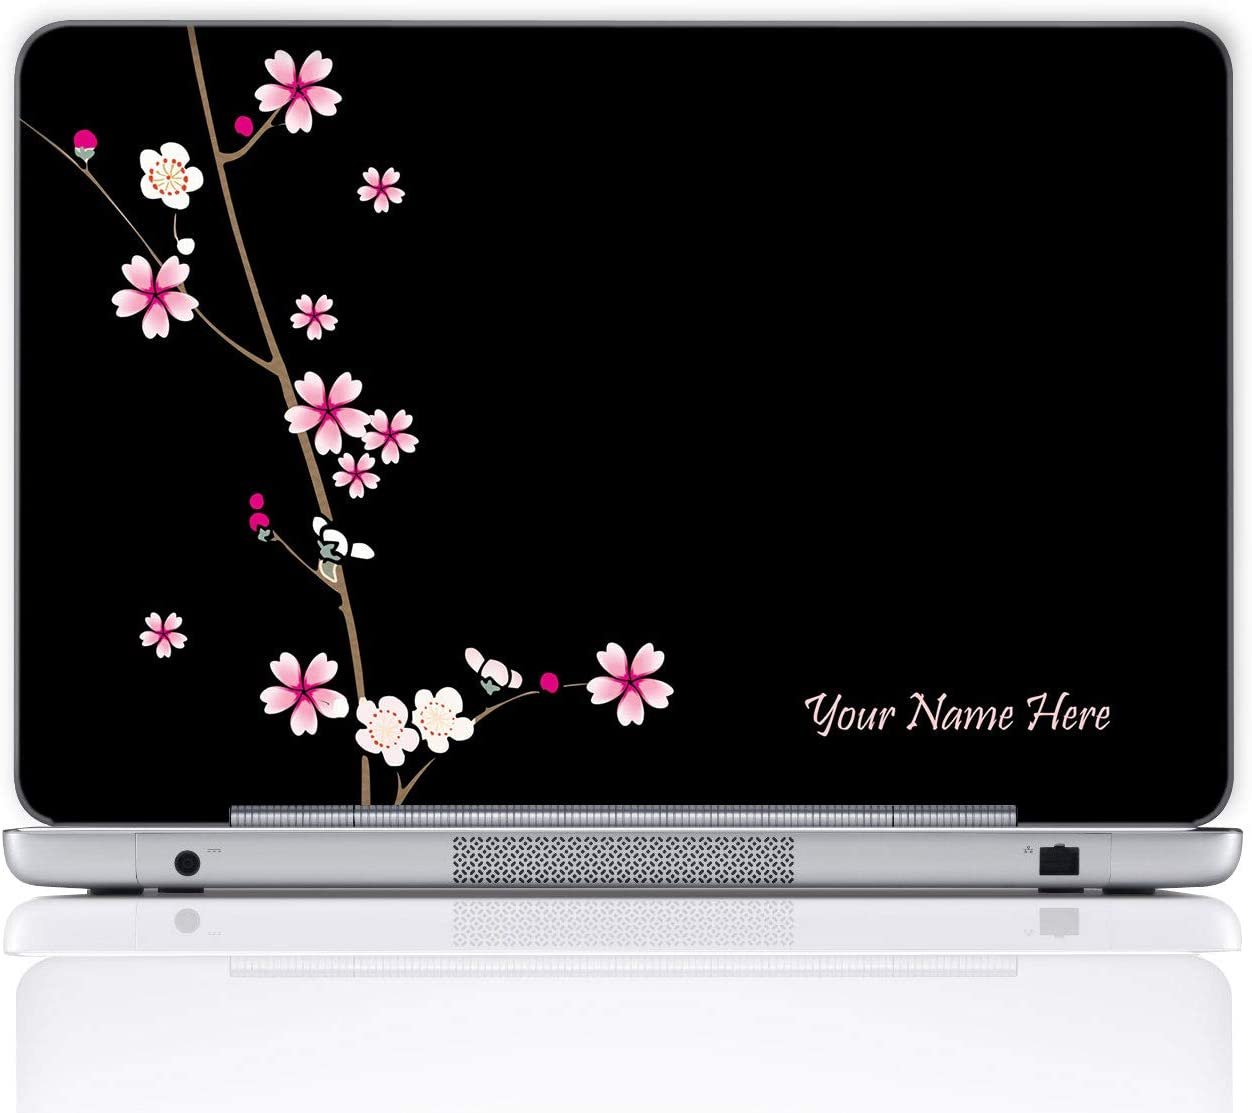 Meffort Inc Personalized Laptop Notebook Notebook Skin Sticker Cover Art Decal, Customize Your Name (15.6 Inch, Plum Blossoms)